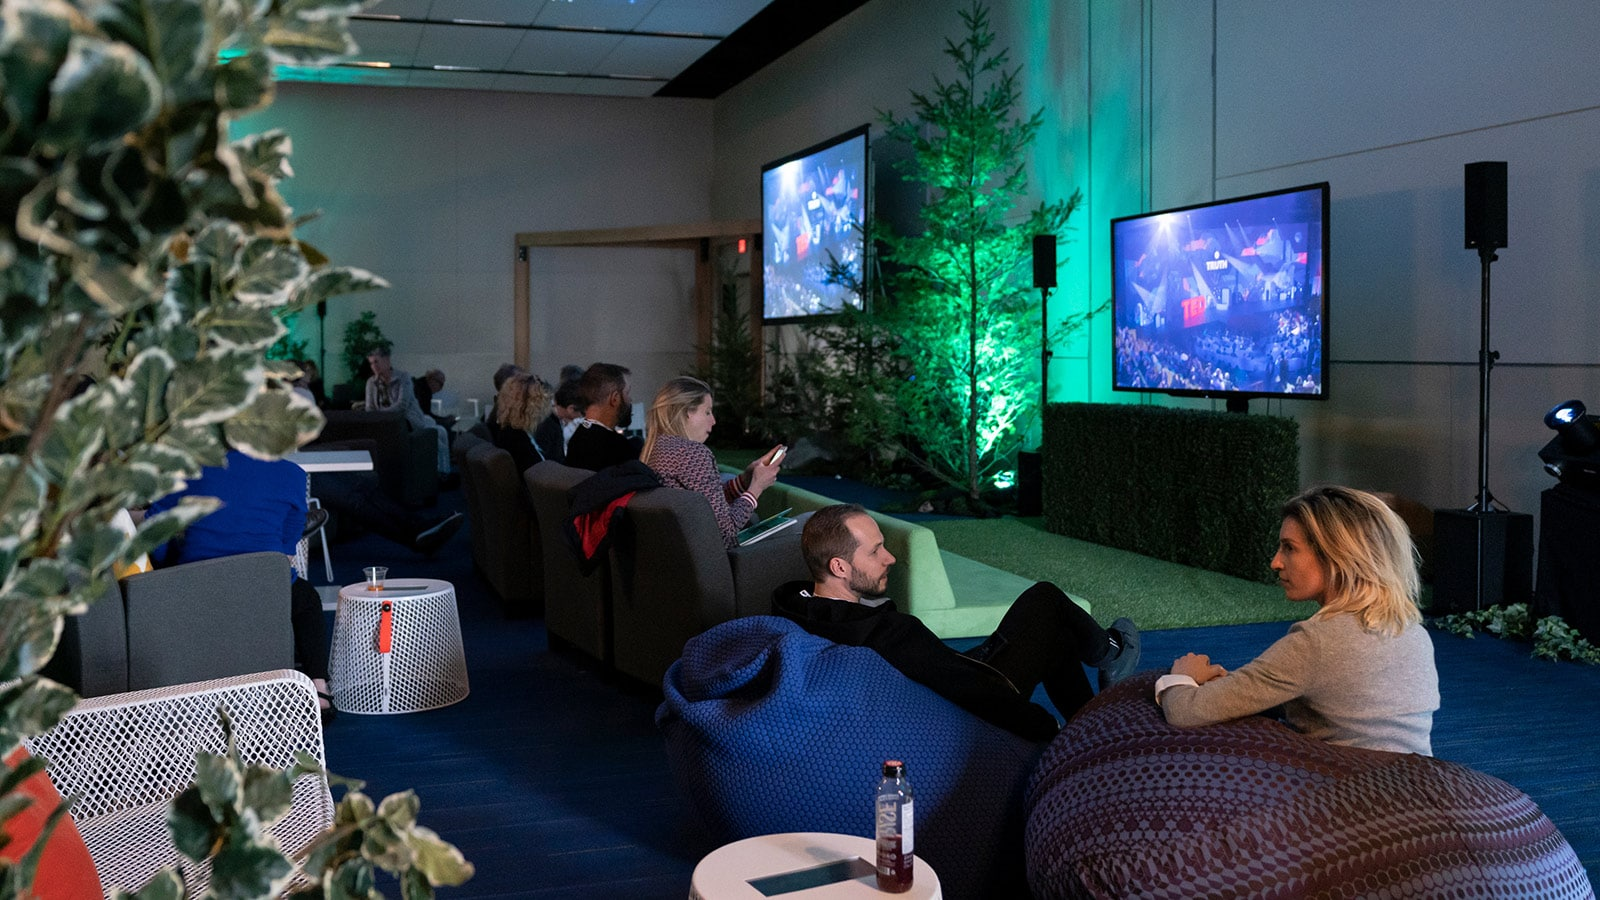 Champagne Simulcast Celebration at TED2019: Bigger Than Us. April 15 - 19, 2019, Vancouver, BC, Canada.